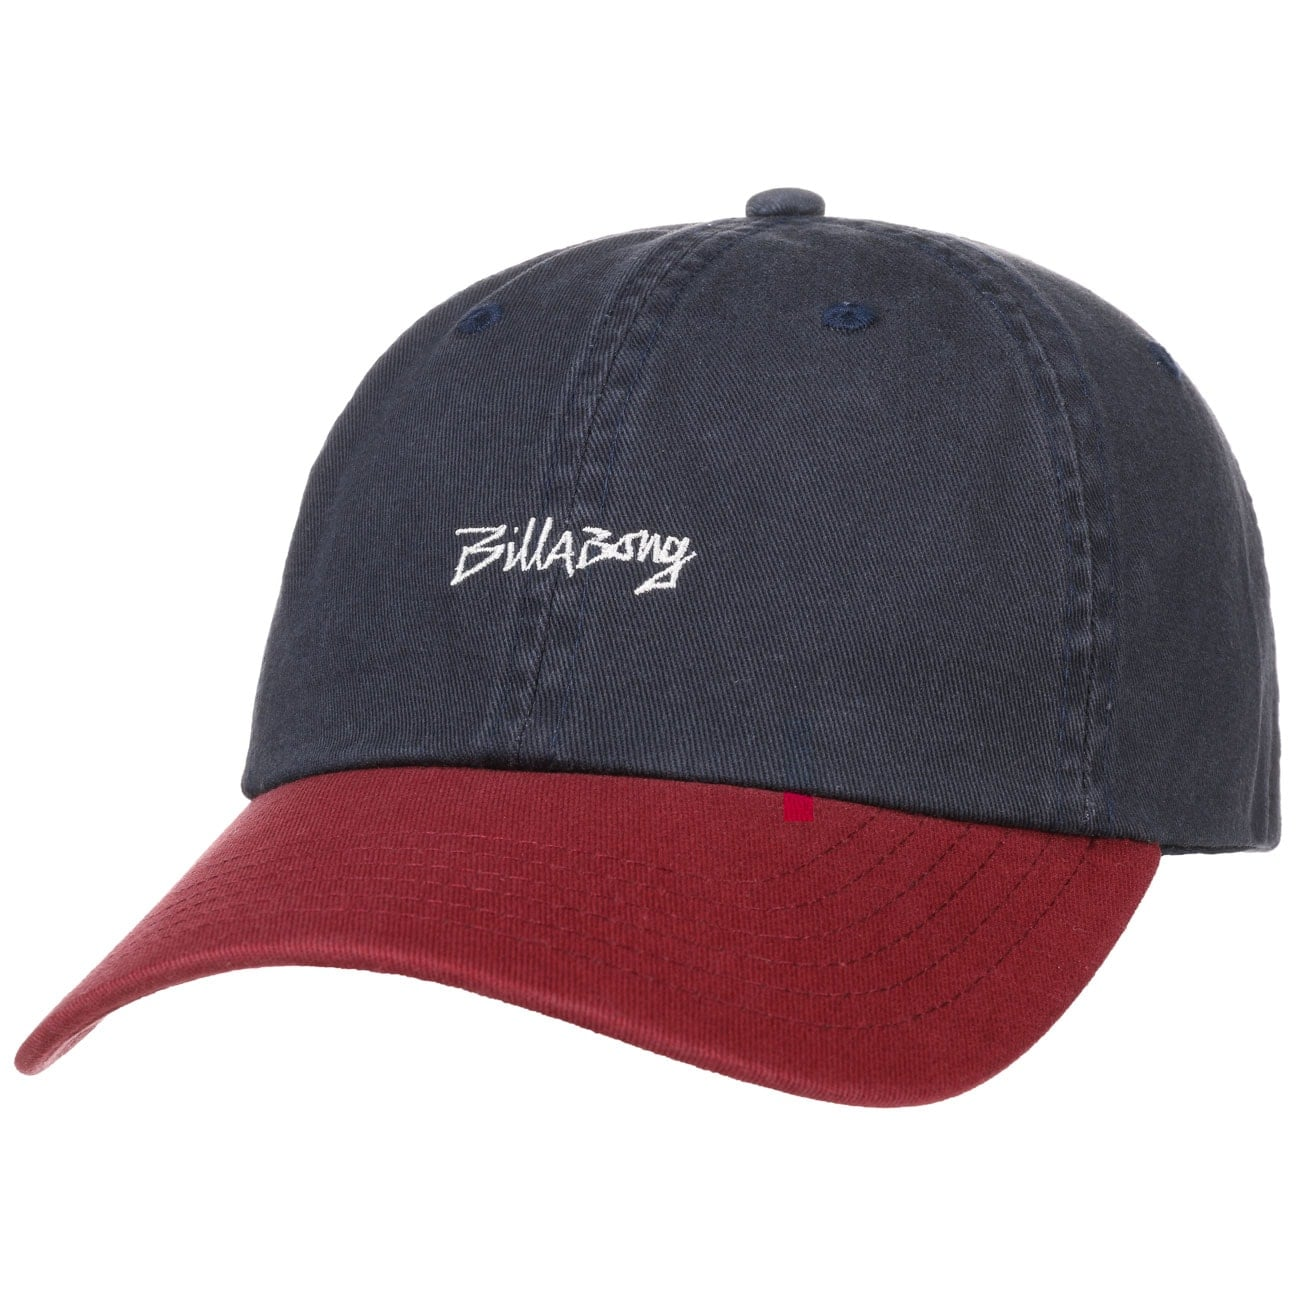 Casquette Eighty Six Lad by Billabong  casquette en coton